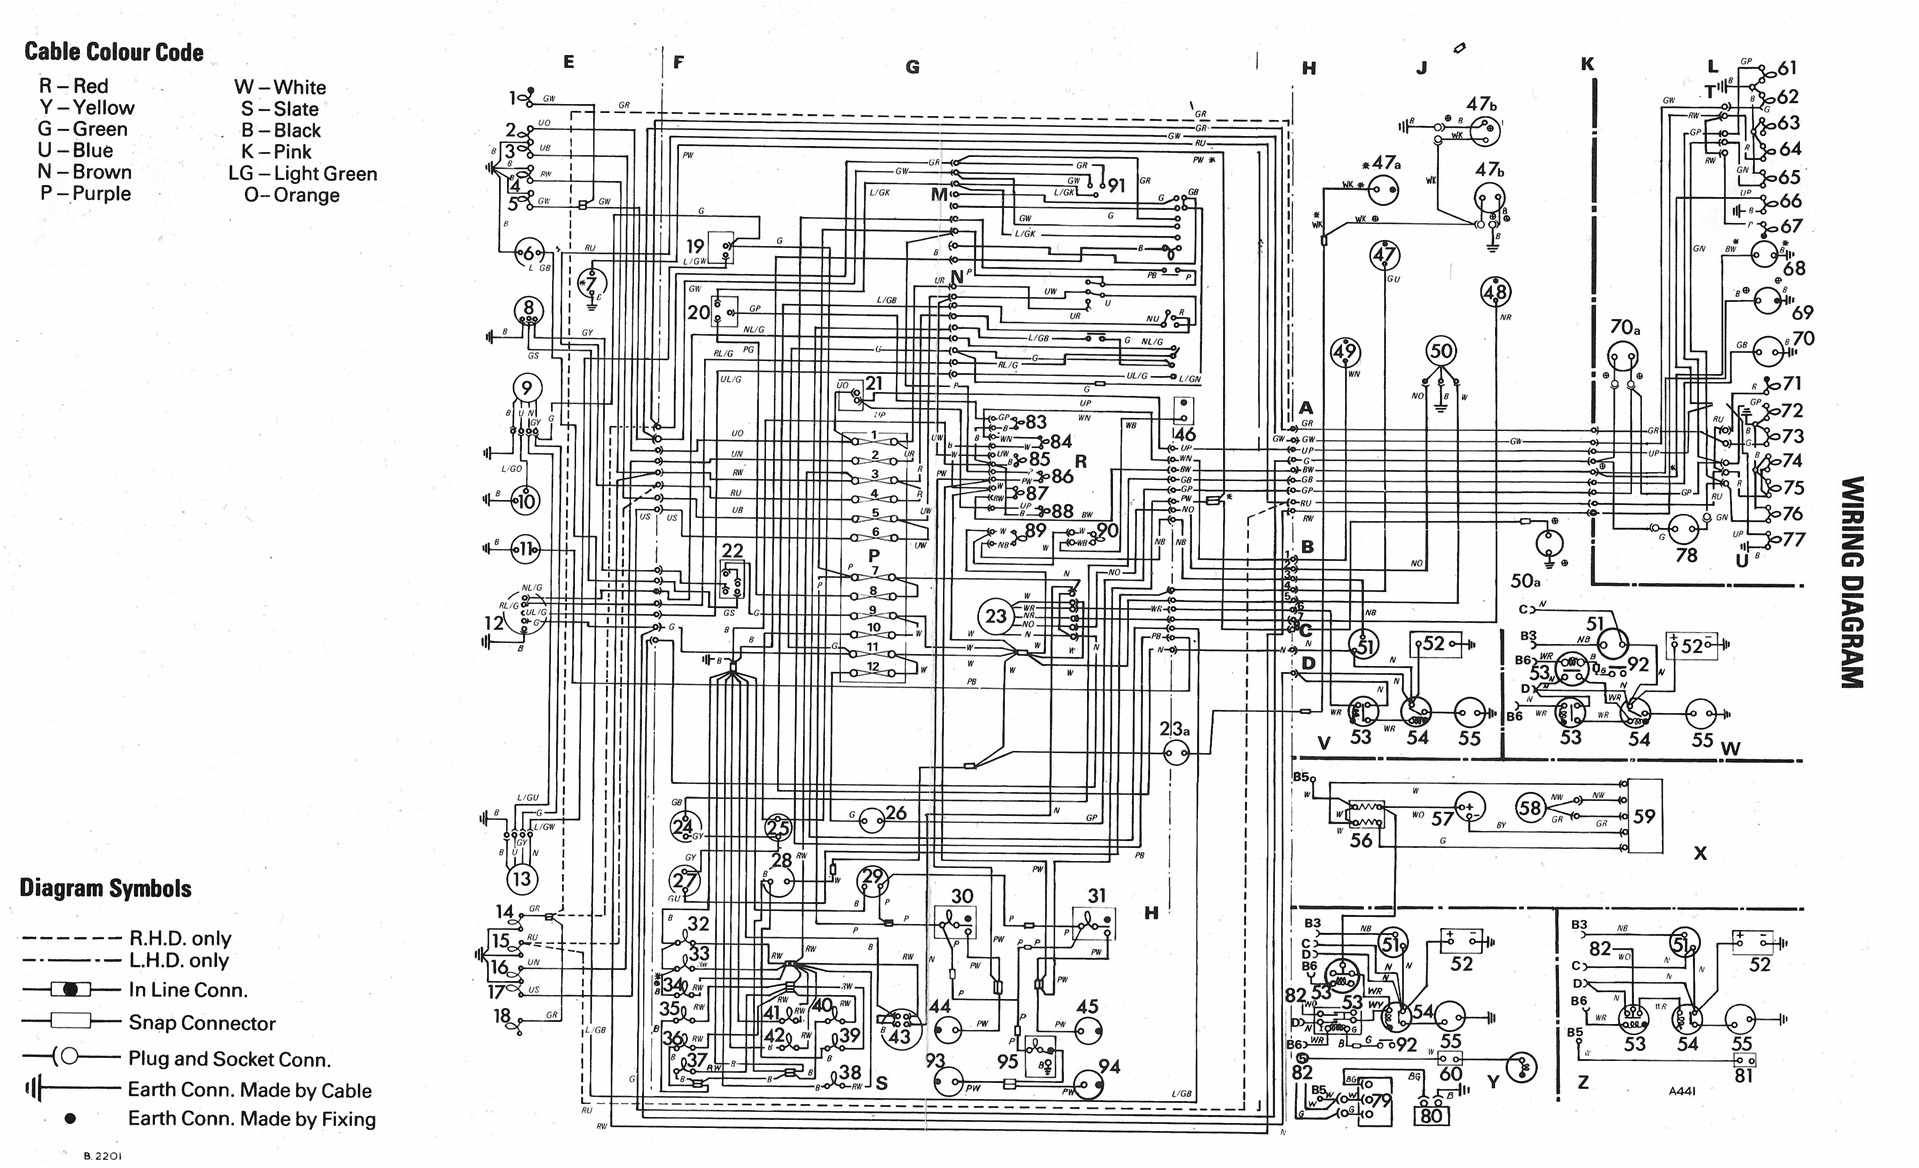 vw golf wiring diagram wiring diagram name vw golf wiring diagram download vw bora wiring diagram download [ 1919 x 1168 Pixel ]